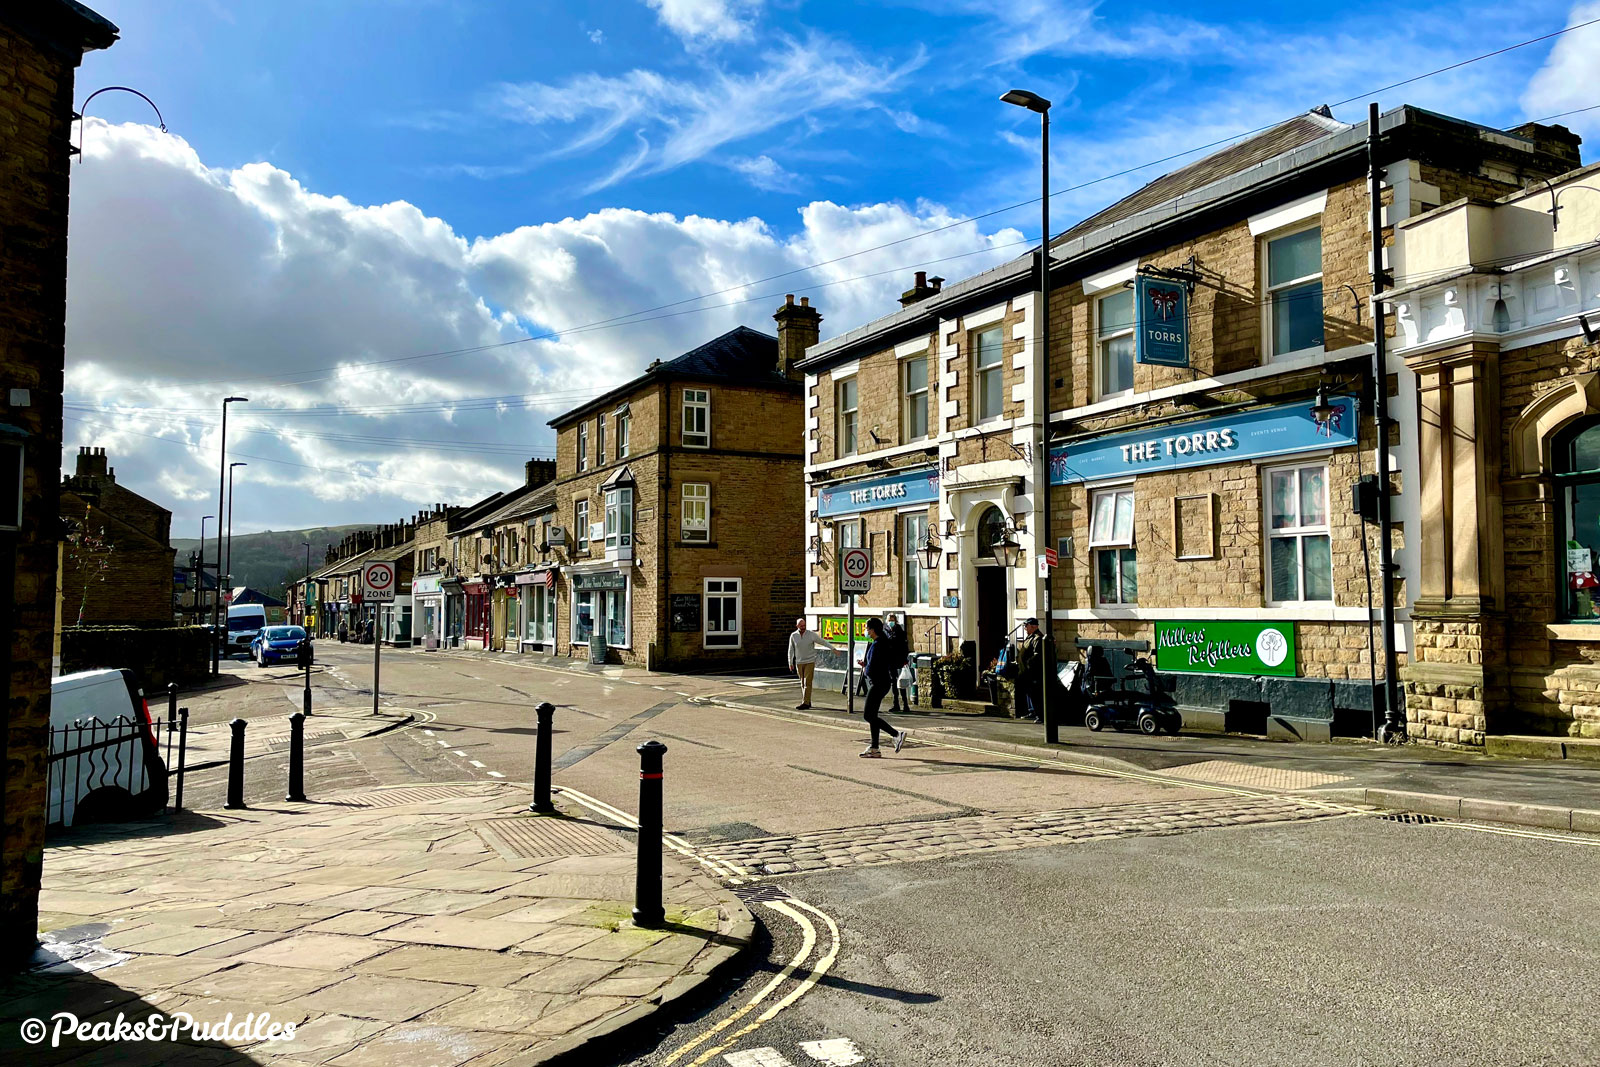 Market Street in the centre of New Mills has pubs, cafes, unique independents, charity shops and a mini supermarket.